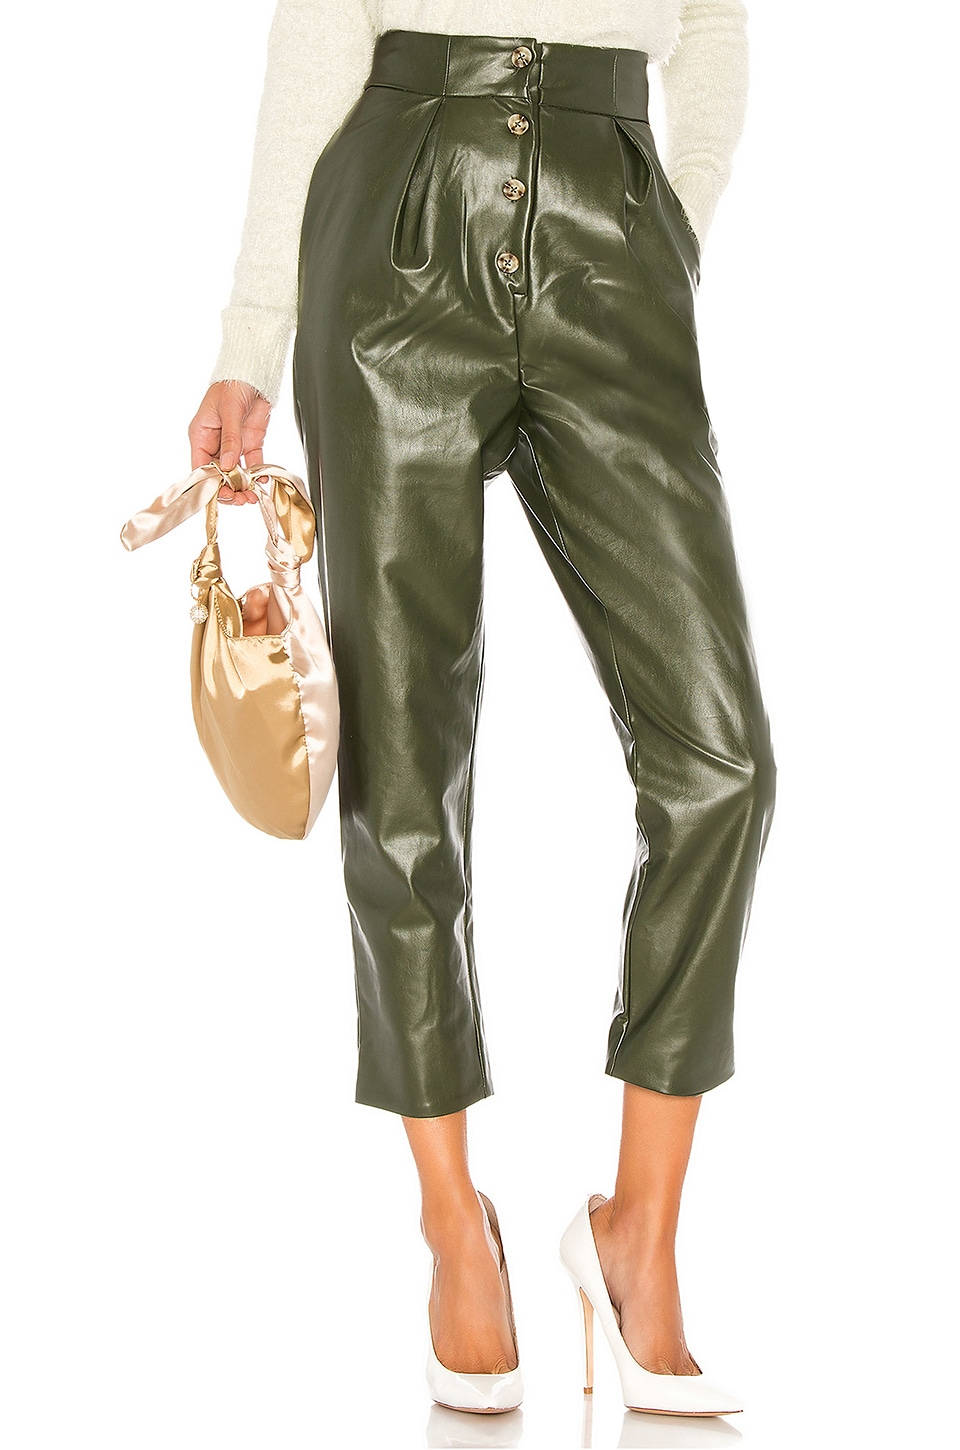 MAJORELLE Clive Pant in Olive Green